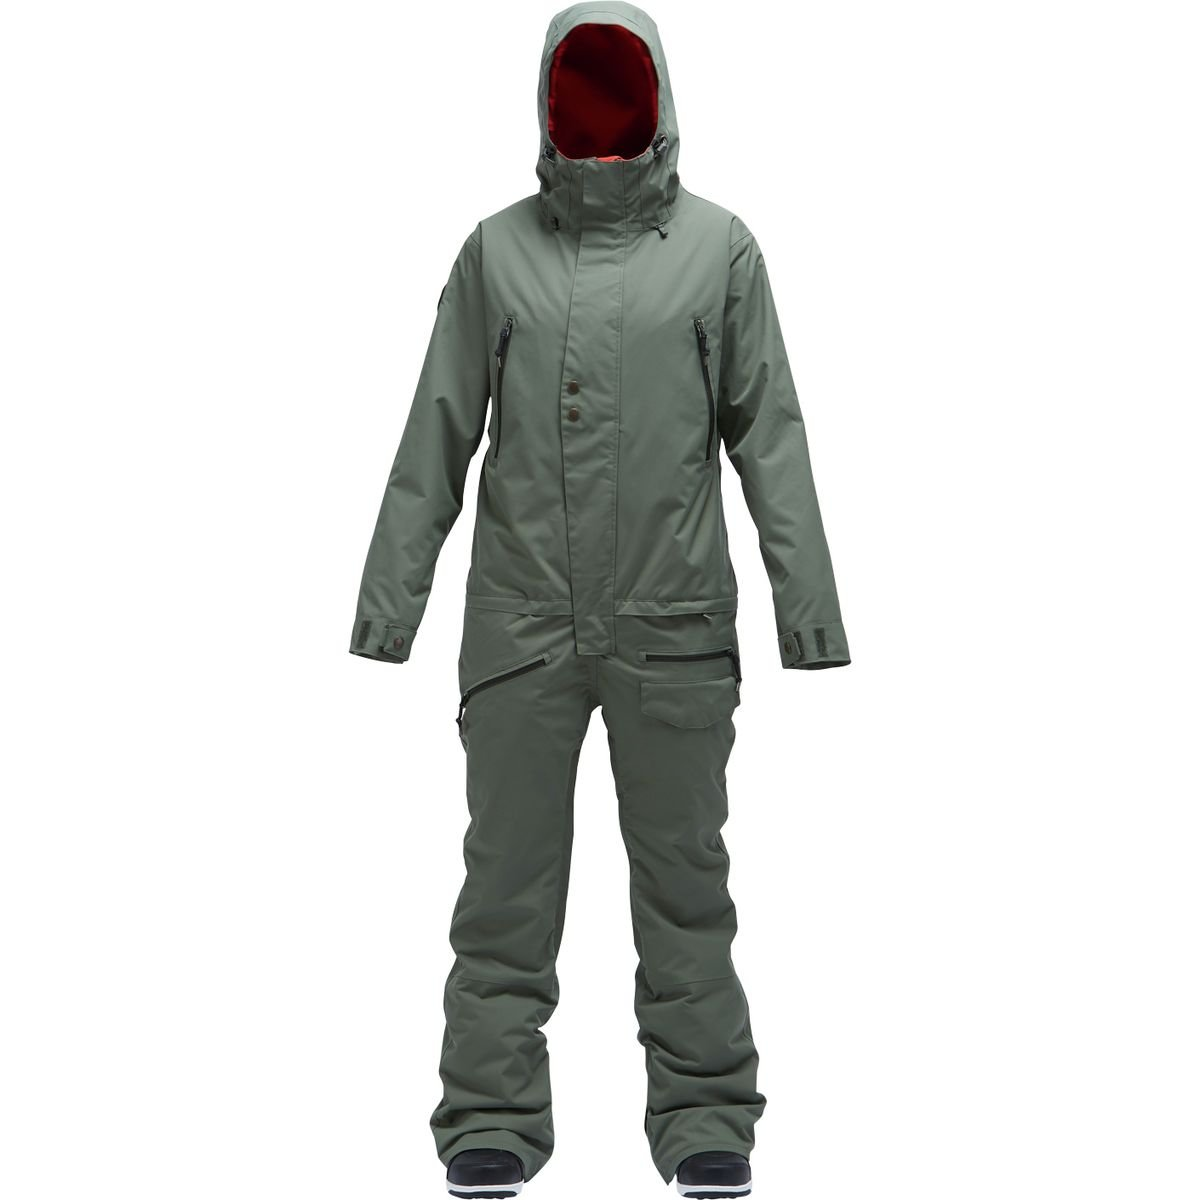 Air Blaster Freedom Insulated Womens One Piece Ski Suit - Medium/Olive by AIRBLASTER (Image #1)